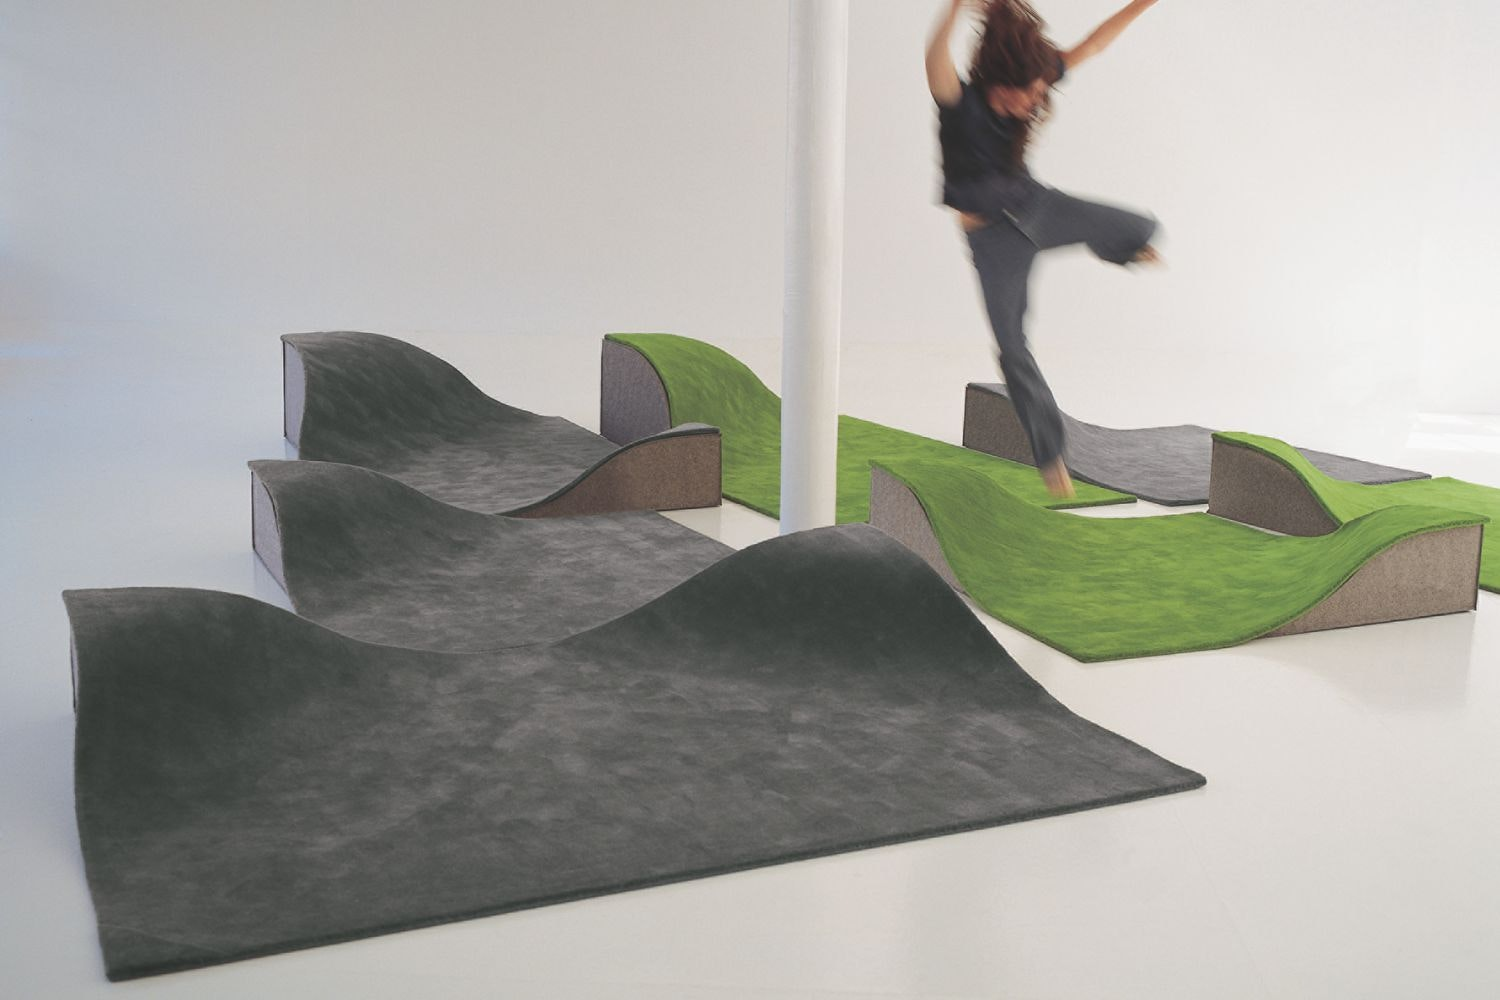 Flying Carpet by Ana Mir + Emili Padros for Nanimarquina